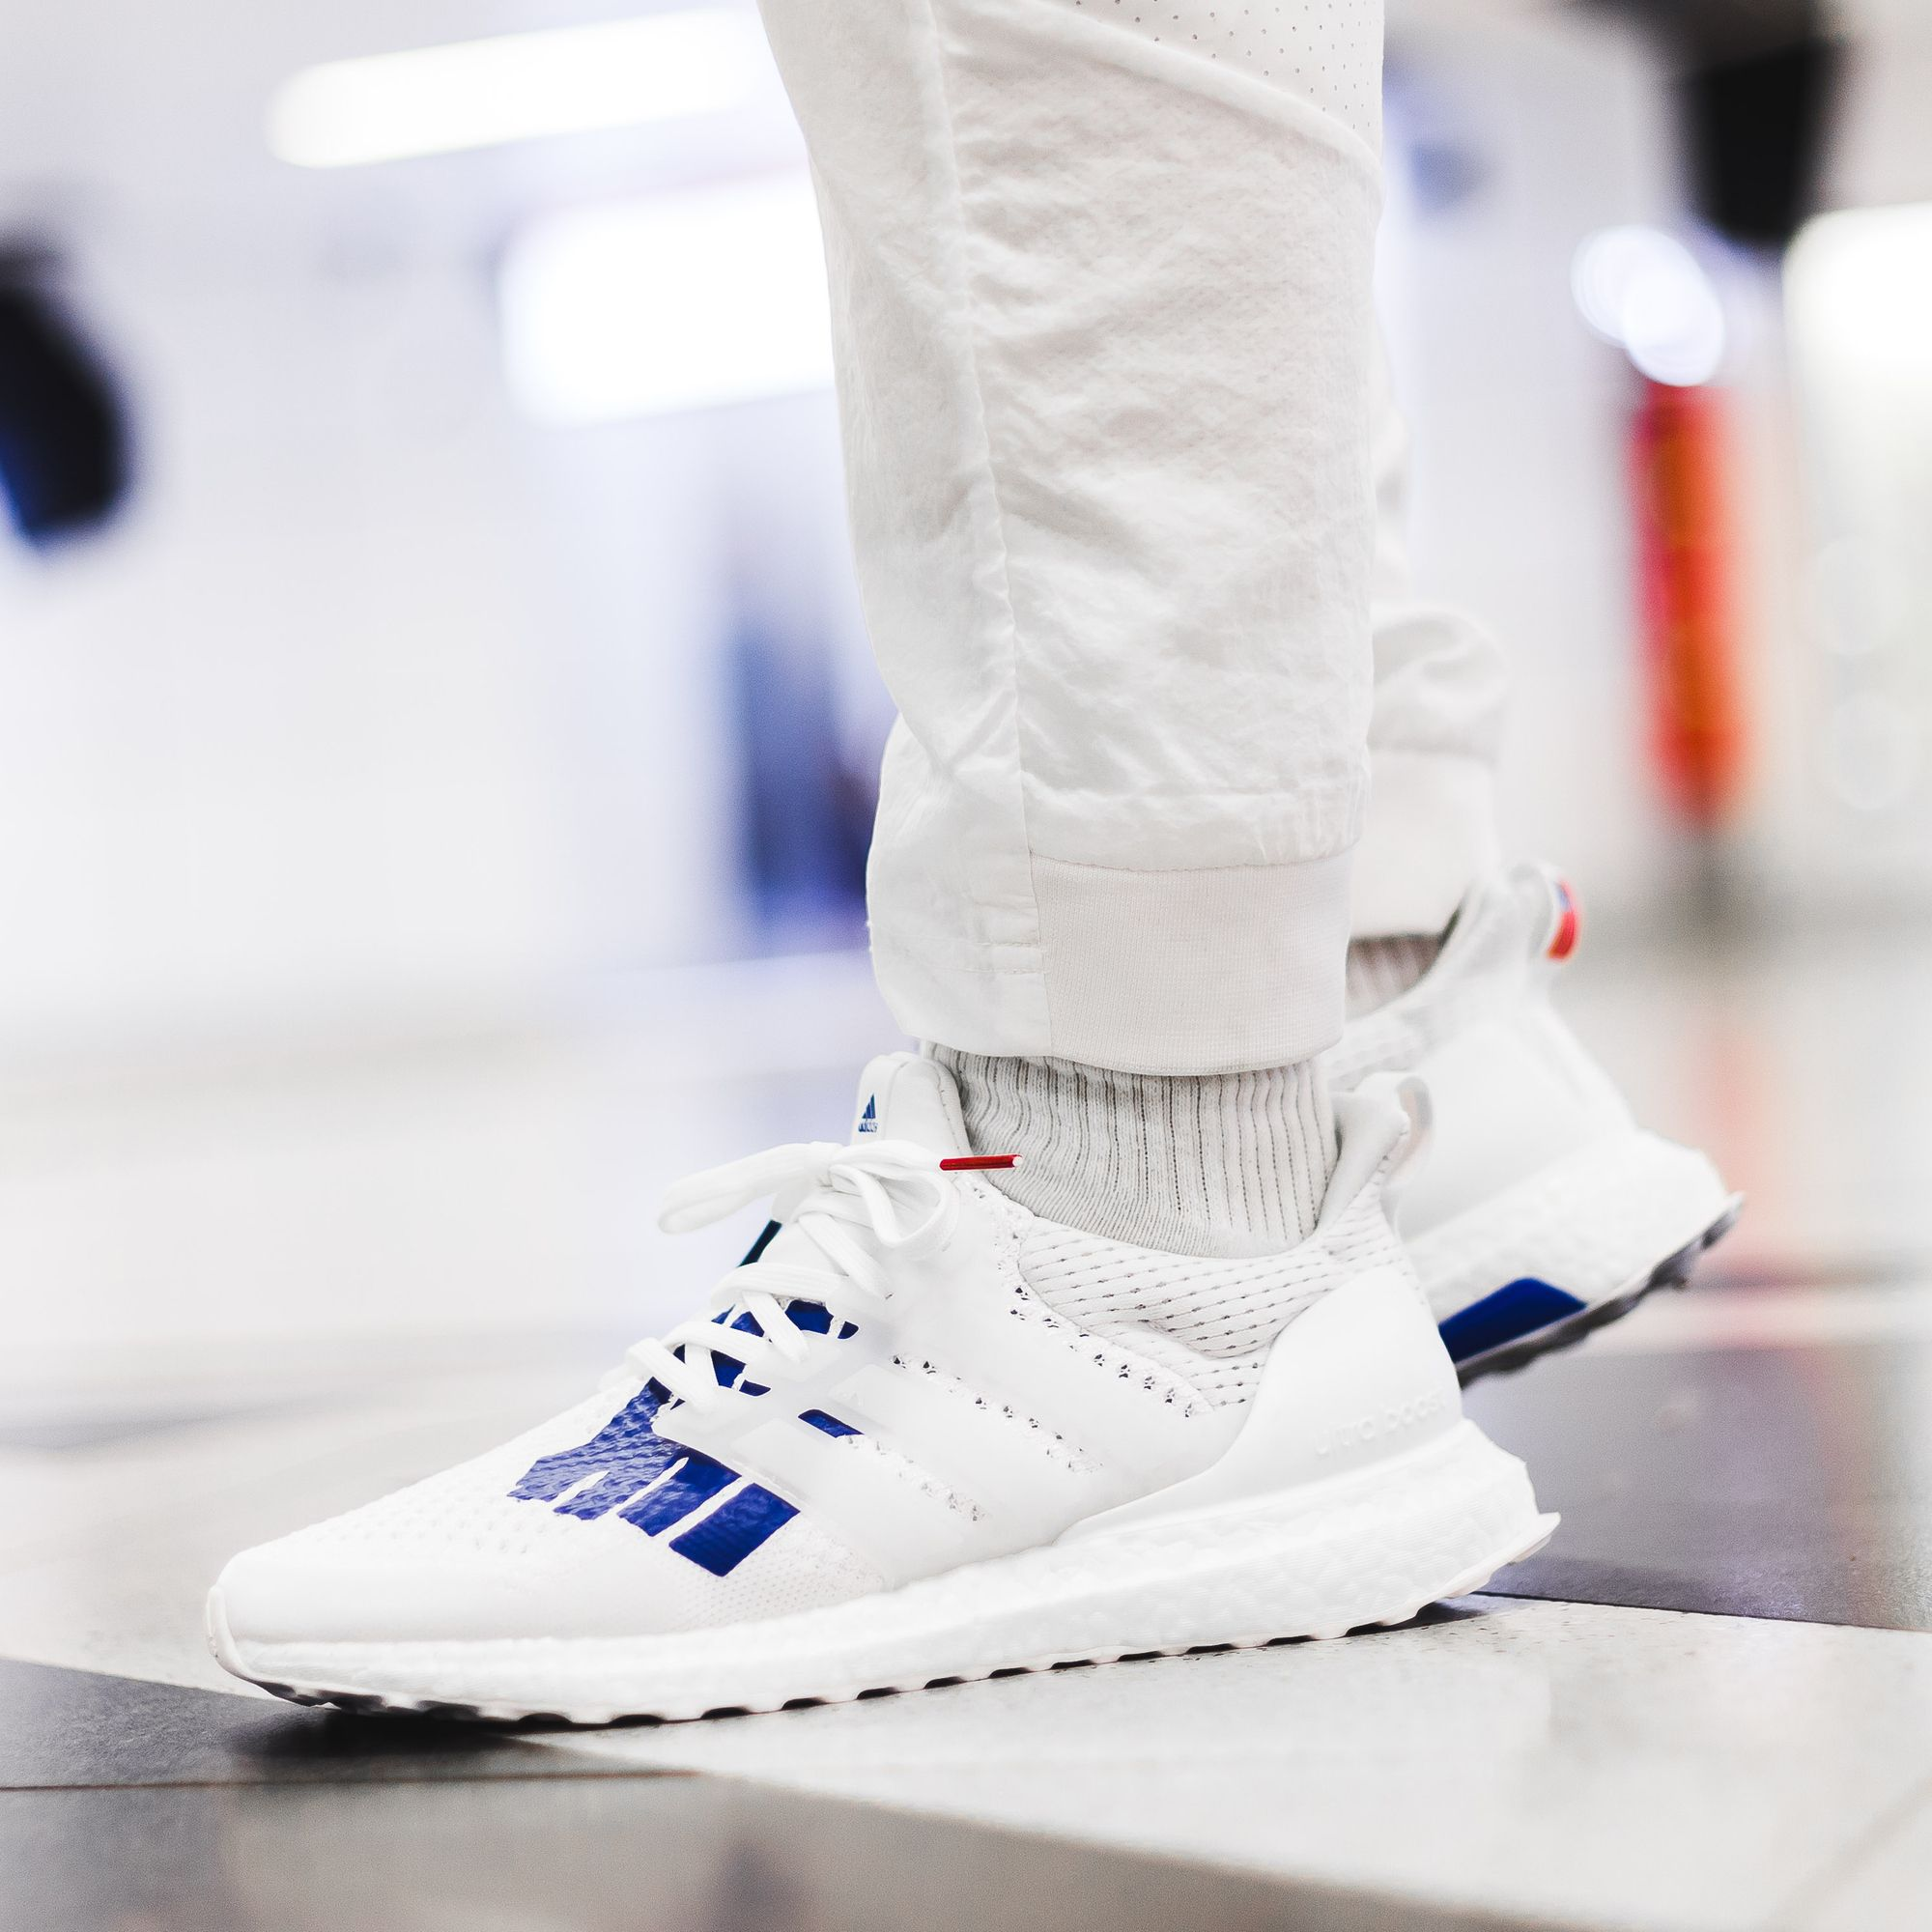 """UNDEFEATED x adidas Ultraboost """"Stars & Stripes"""": Where to Buy"""